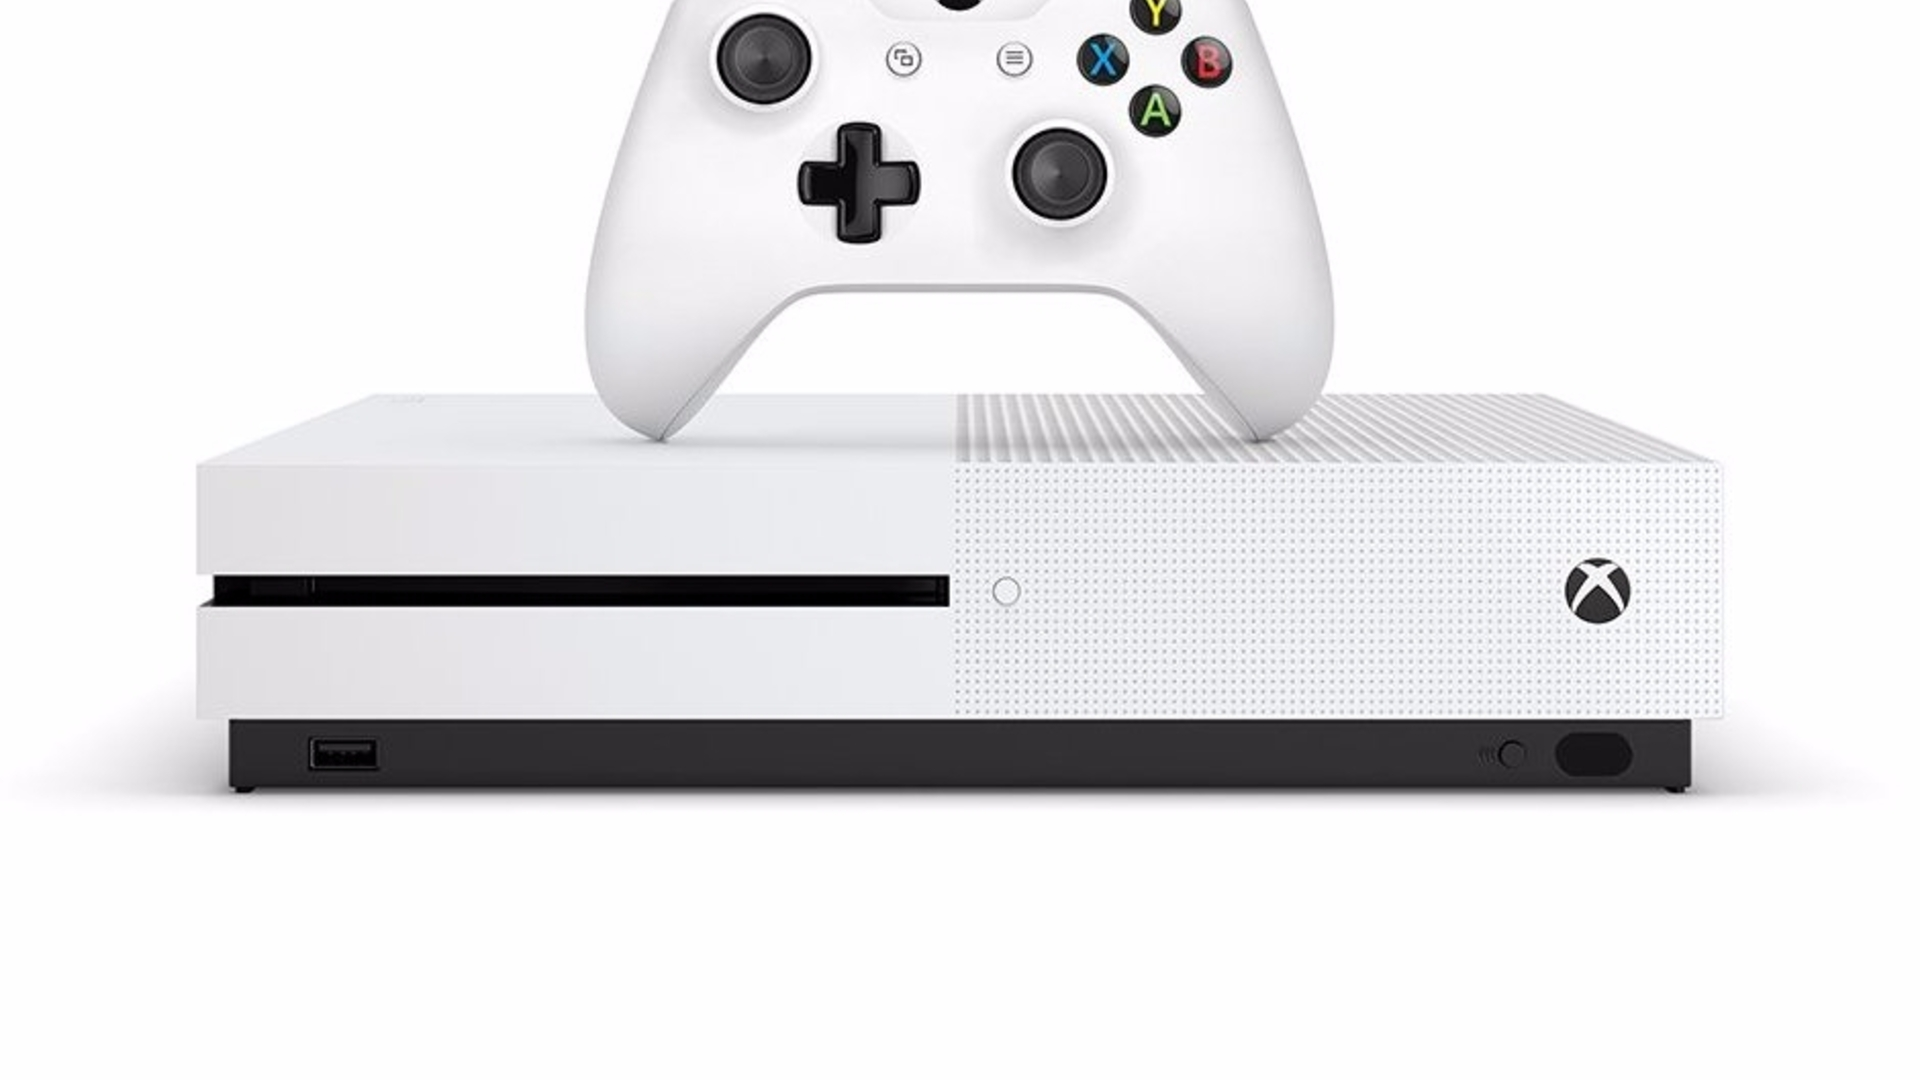 Microsoft Xbox One S Review This Hookup Diagram Shows The Ps3 Connected To A 51 Capable